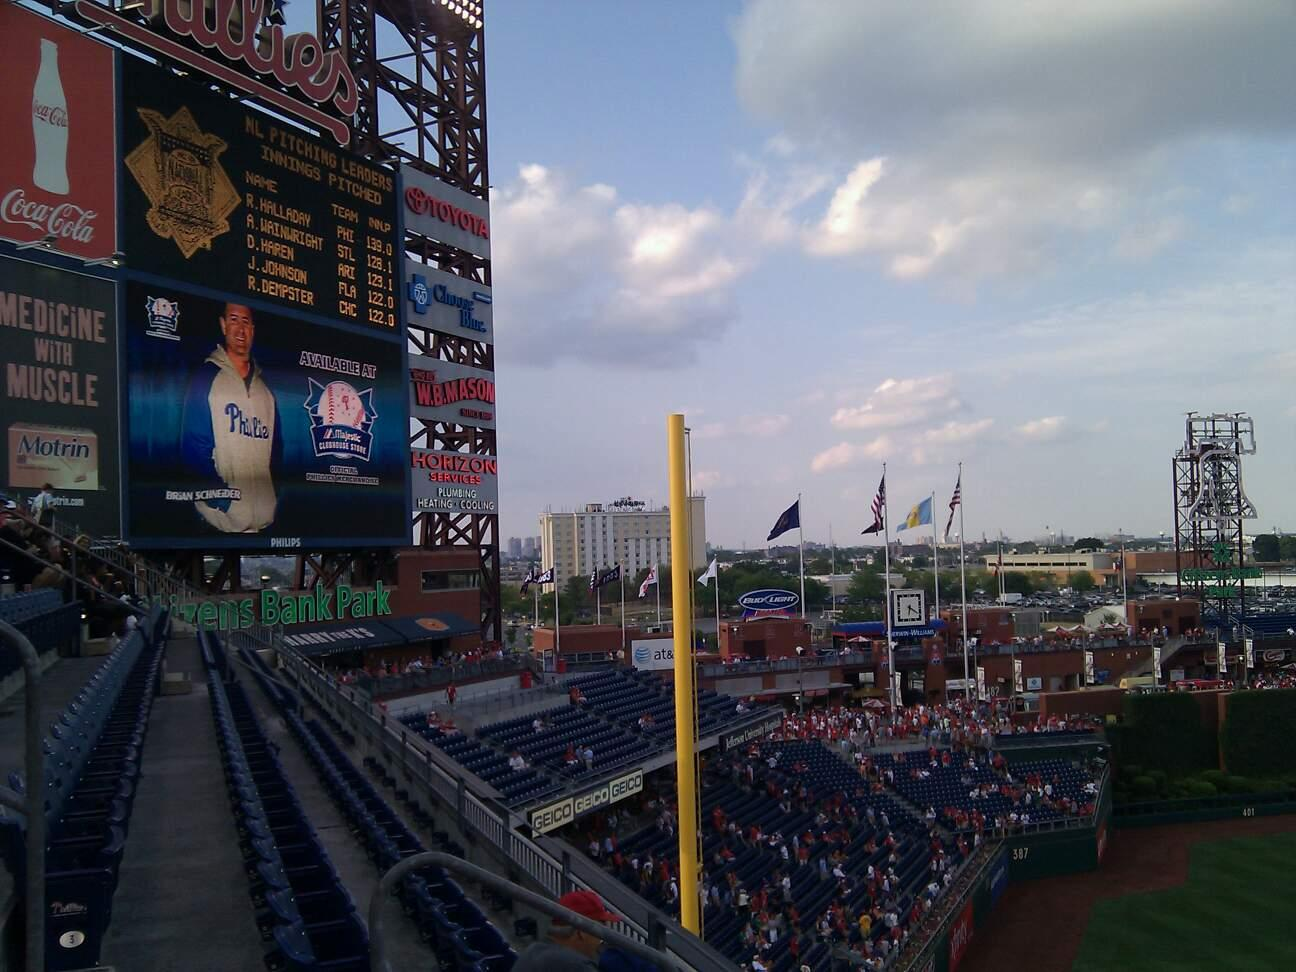 Citizens Bank Park Section 331 Row 3 Seat 19